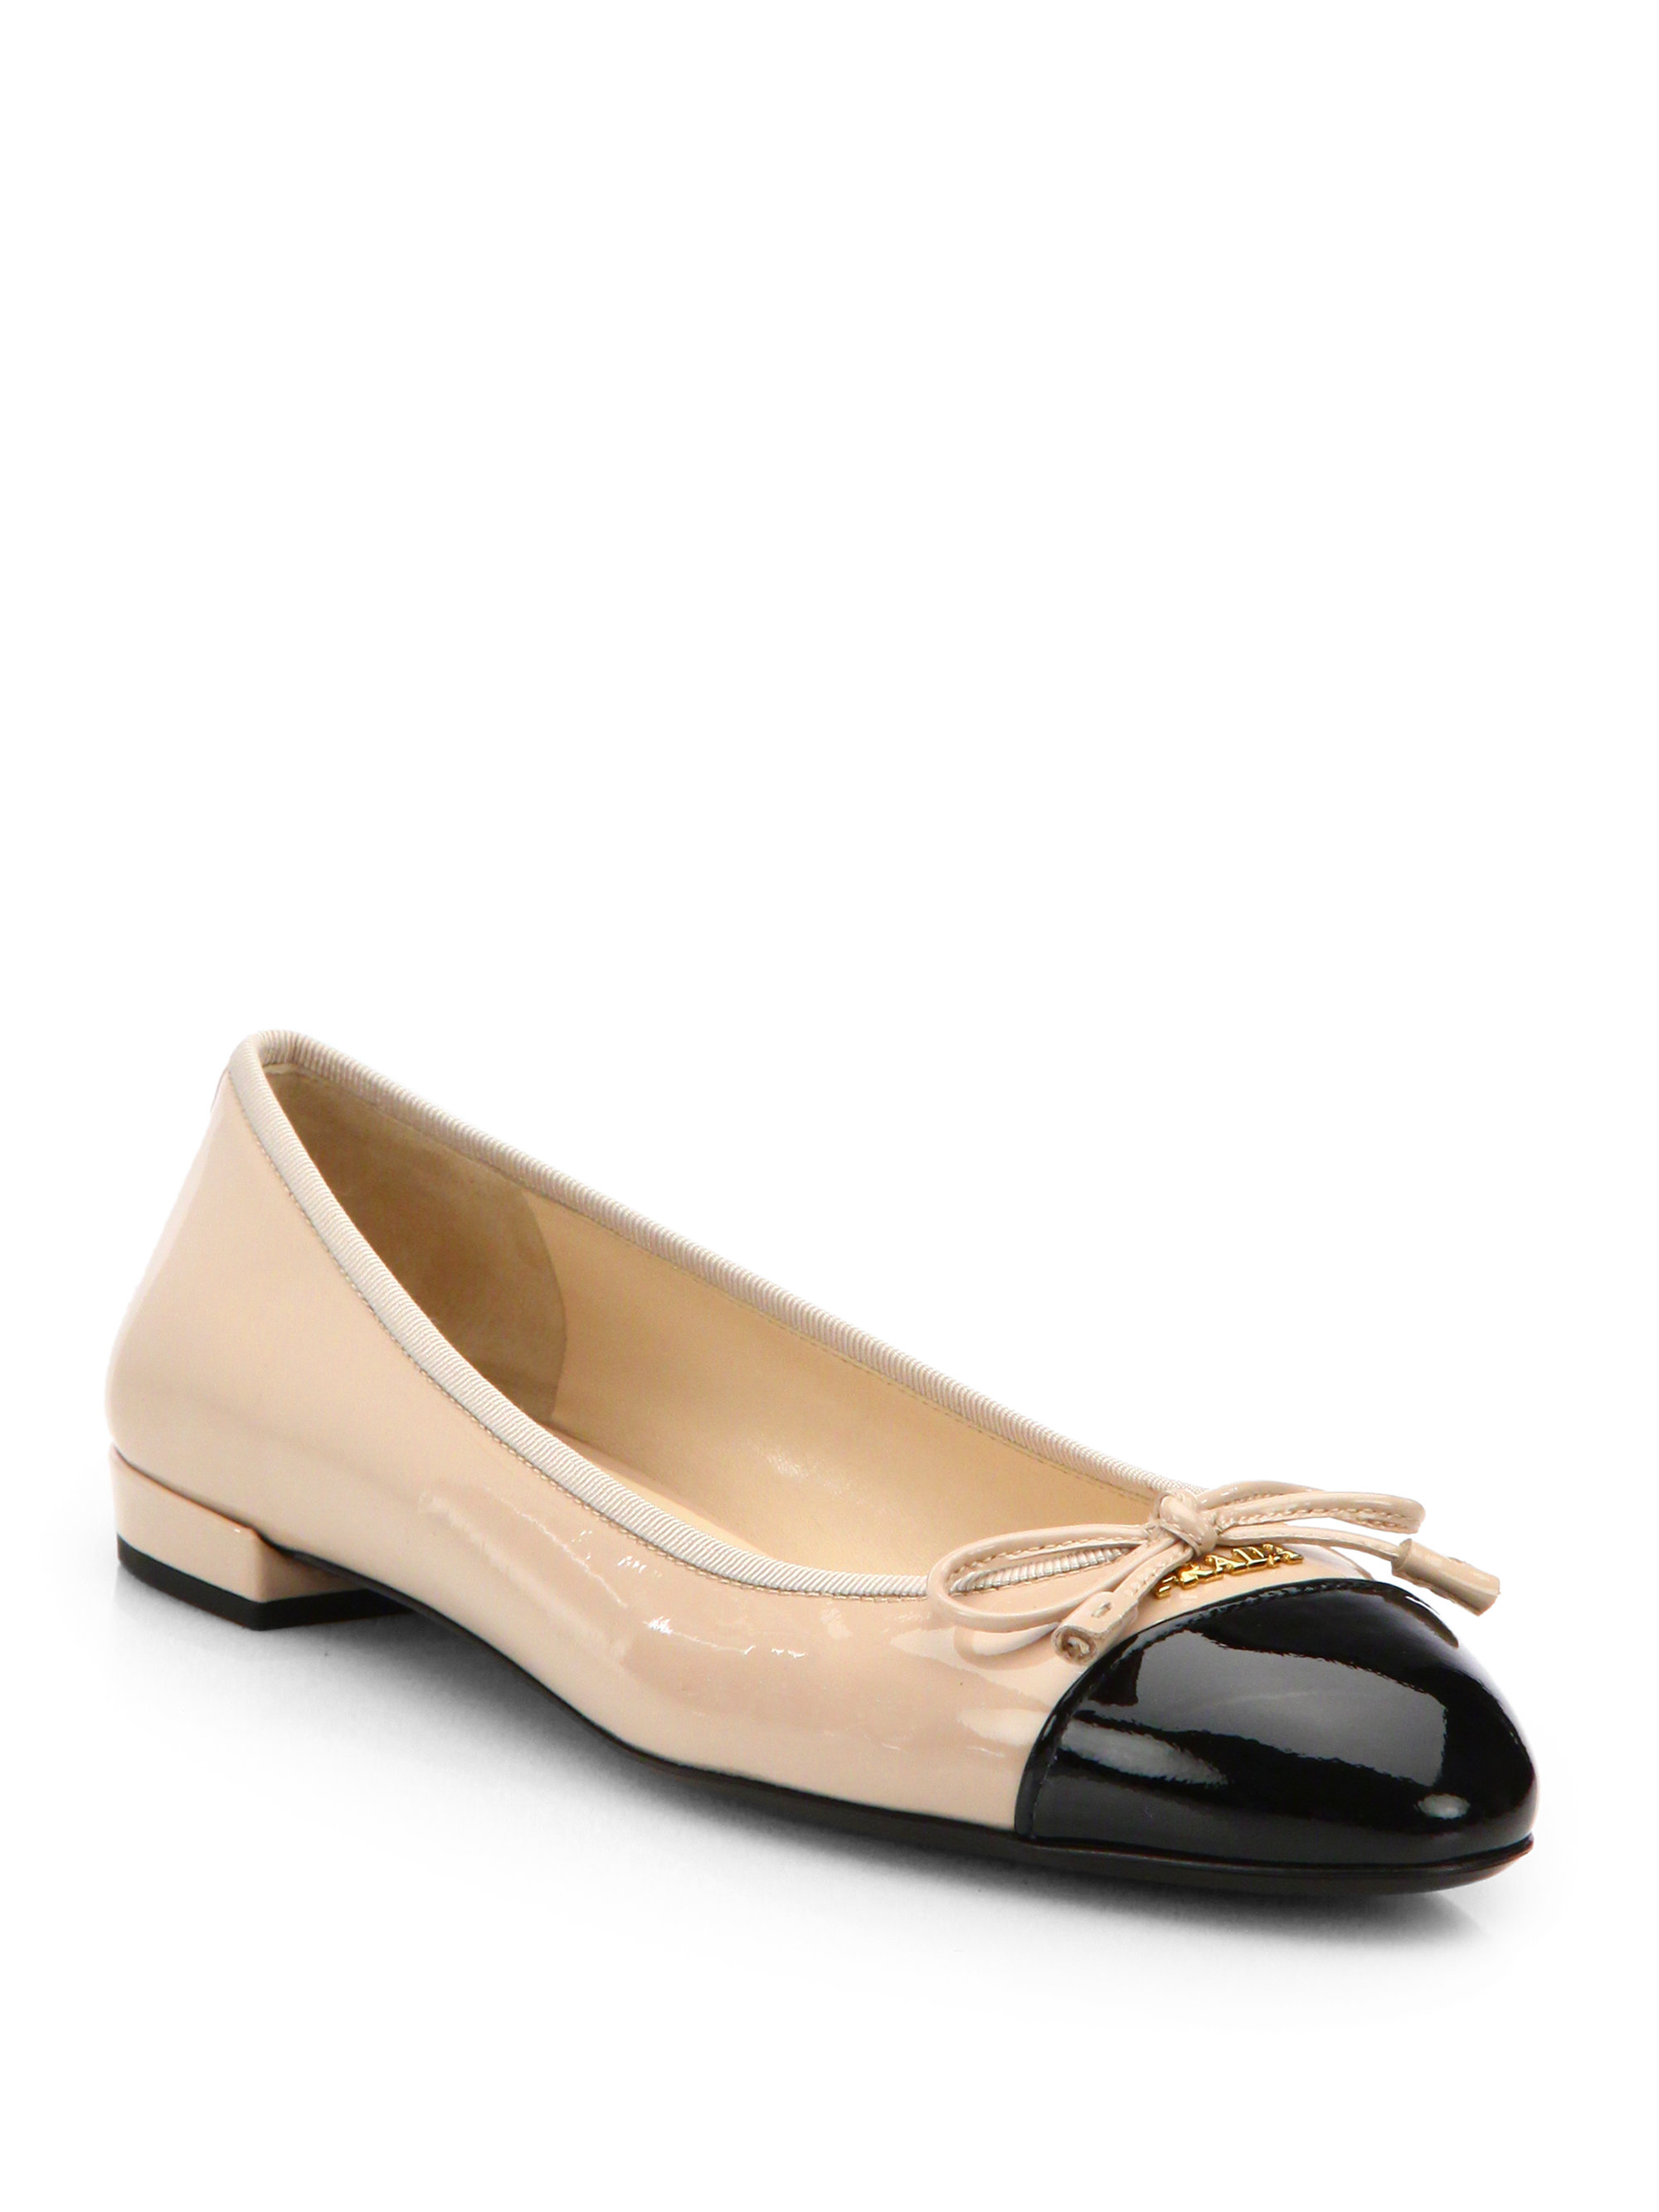 9744252375 Prada Patent Leather Cap-Toe Ballet Flats in Black - Lyst